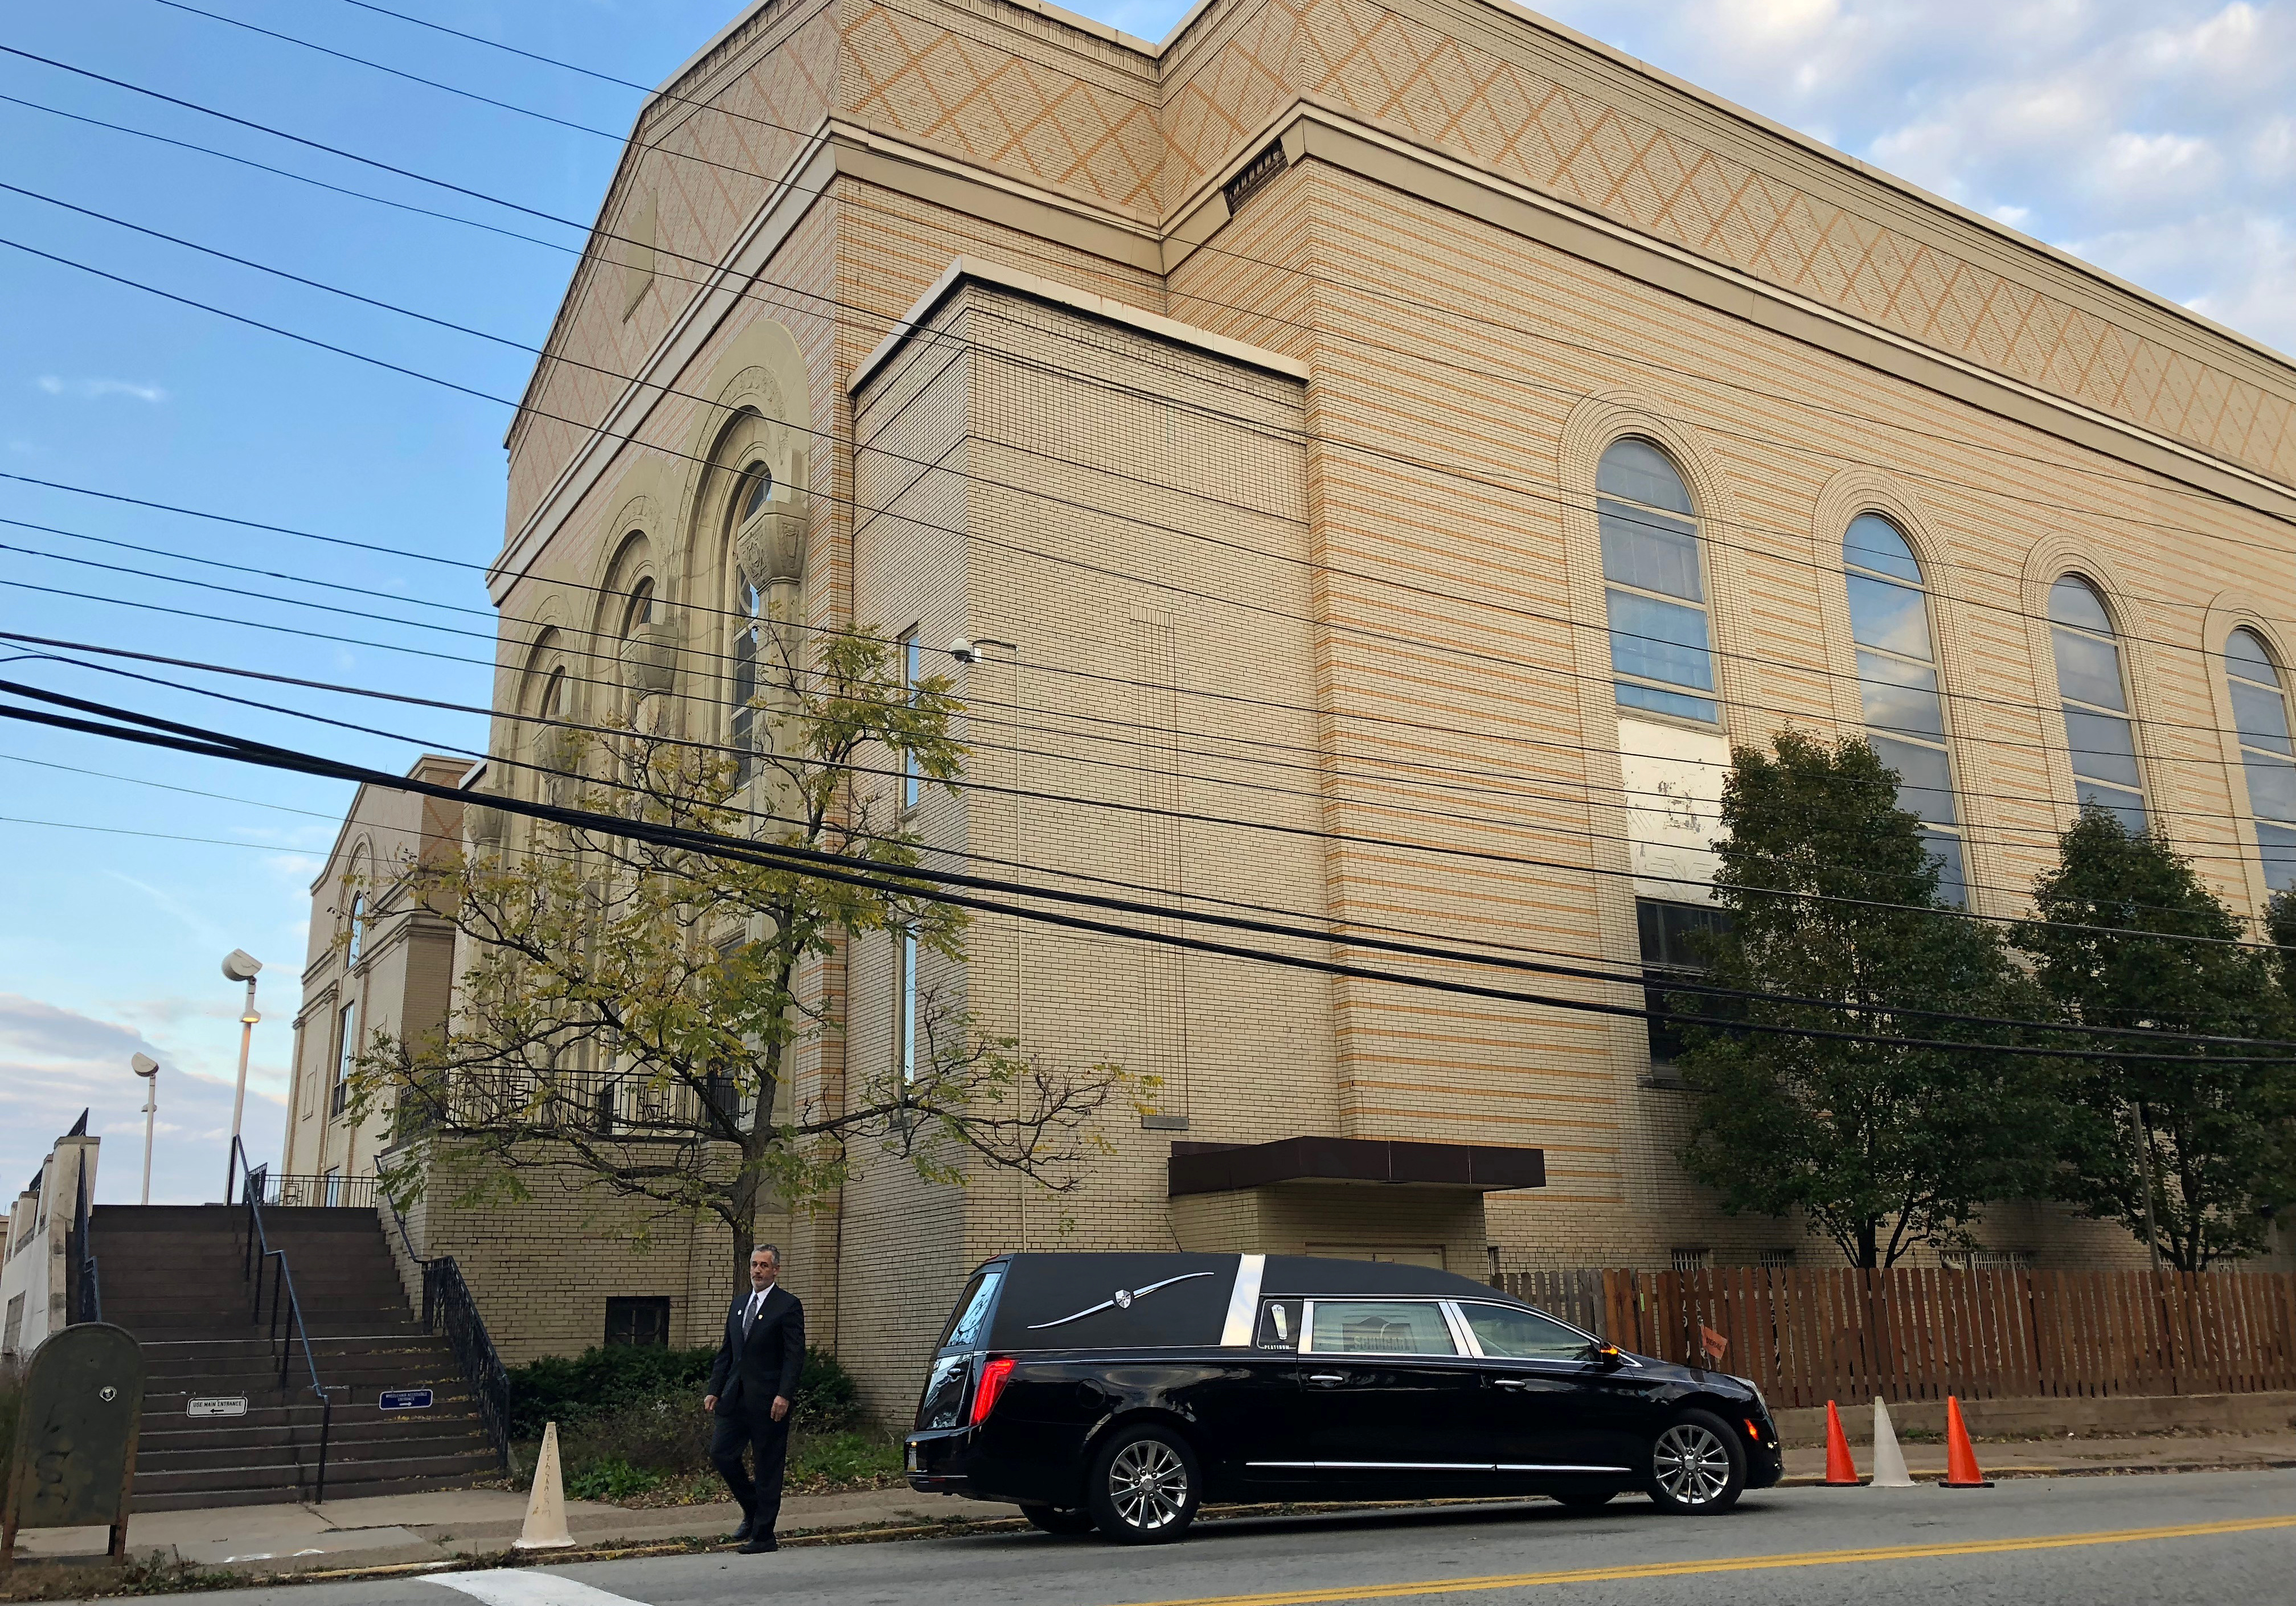 A hearse is parked outside the Berg Shalom Synagogue, where a funeral will be held for Joyce Feinberg, one of the victims in Saturday's synagogue shooting in Pittsburgh, Pennsylvania, U.S. October 31, 2018. REUTERS/Jessica Resnick-Ault